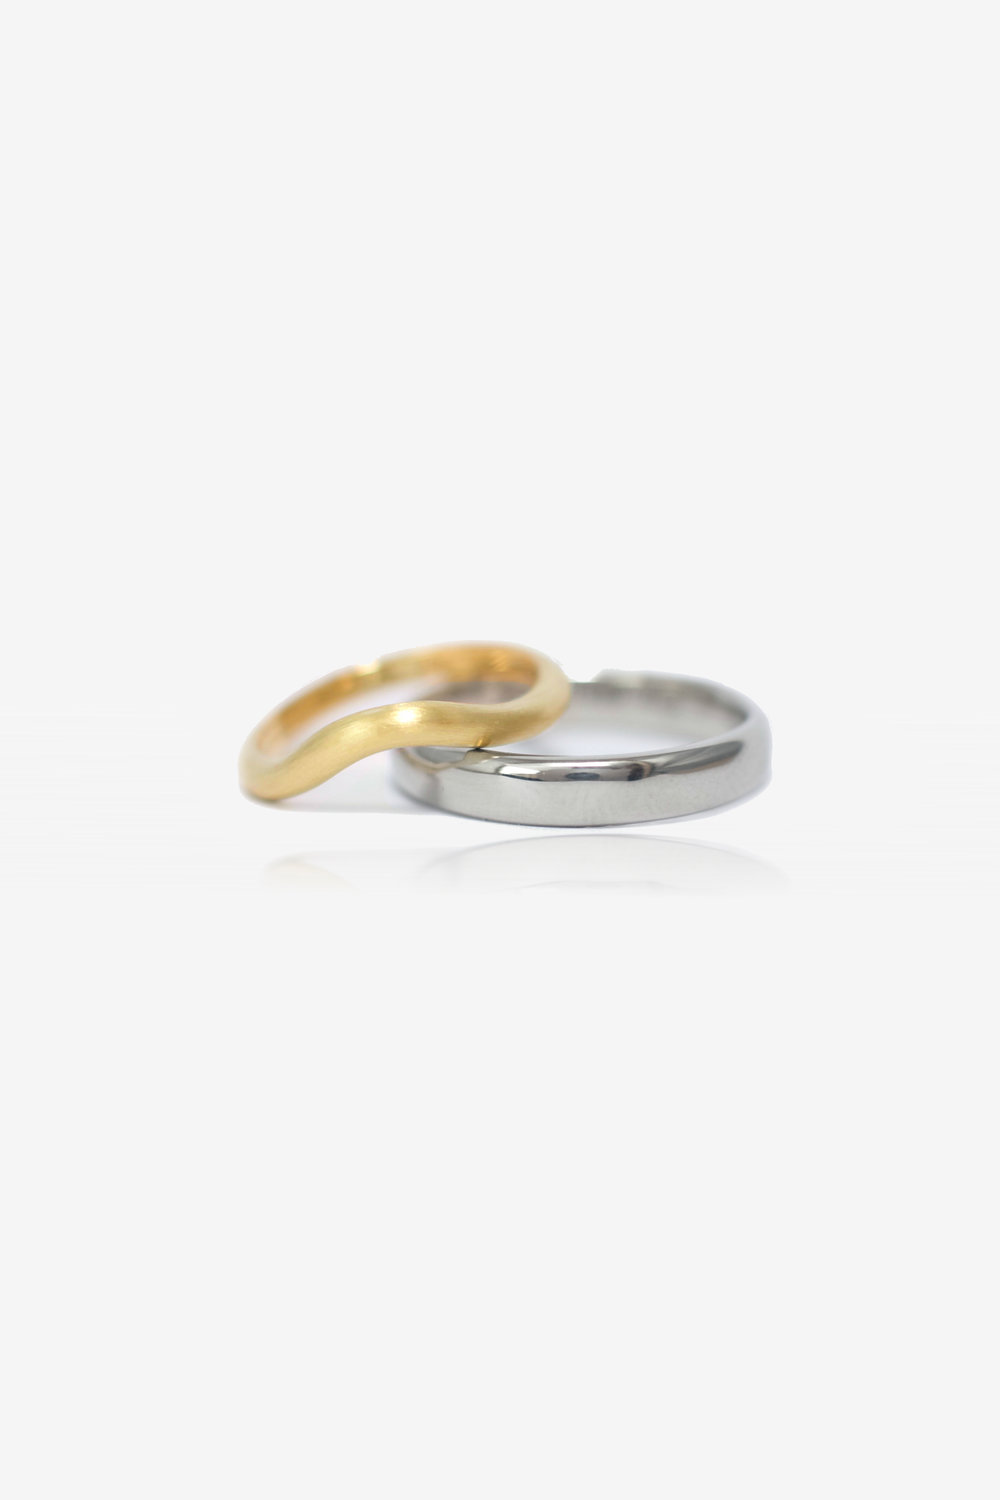 Individual Wedding Bands